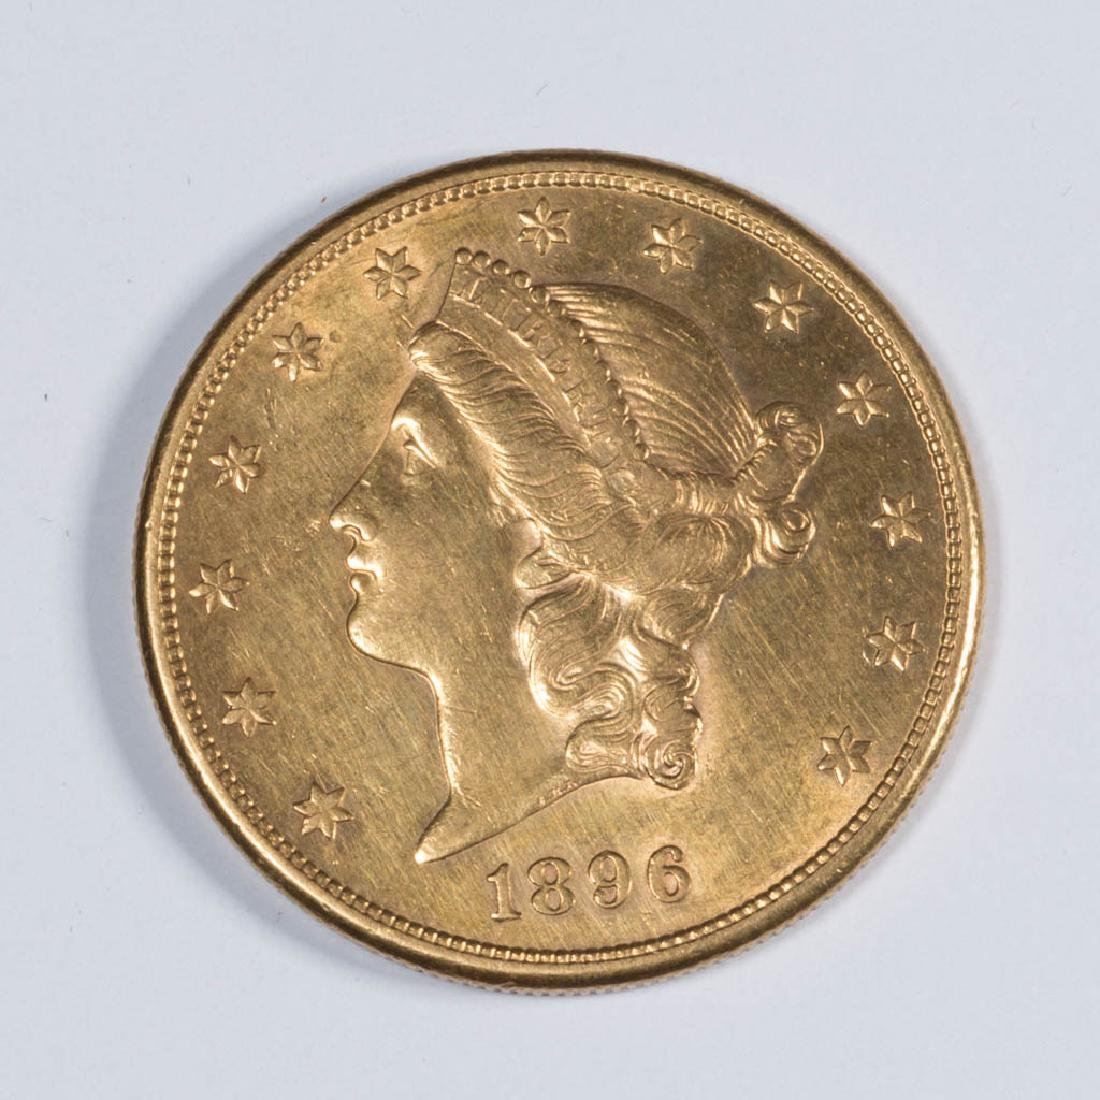 UNITED STATES 1896-S LIBERTY HEAD $20 GOLD COIN